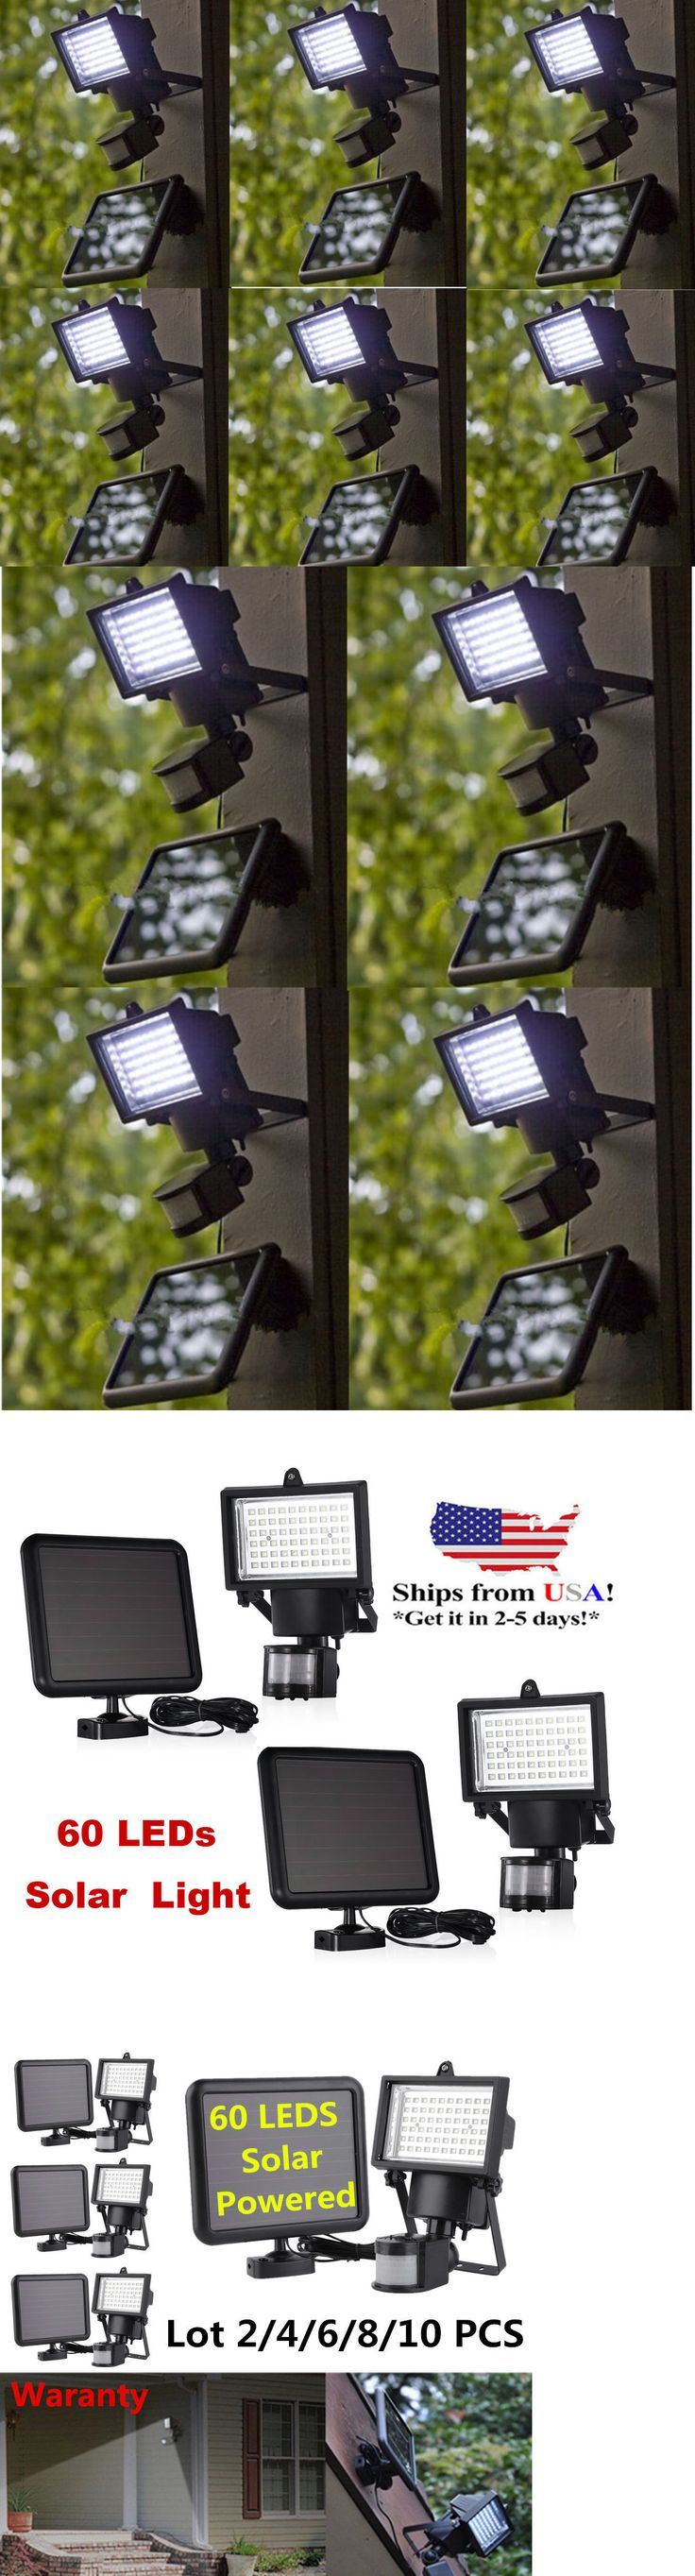 Landscape and Walkway Lights 94940: 6Pack 60 Smd Led Solar Powered Motion Sensor Security Light Flood Light Lamp Lot -> BUY IT NOW ONLY: $168.95 on eBay!